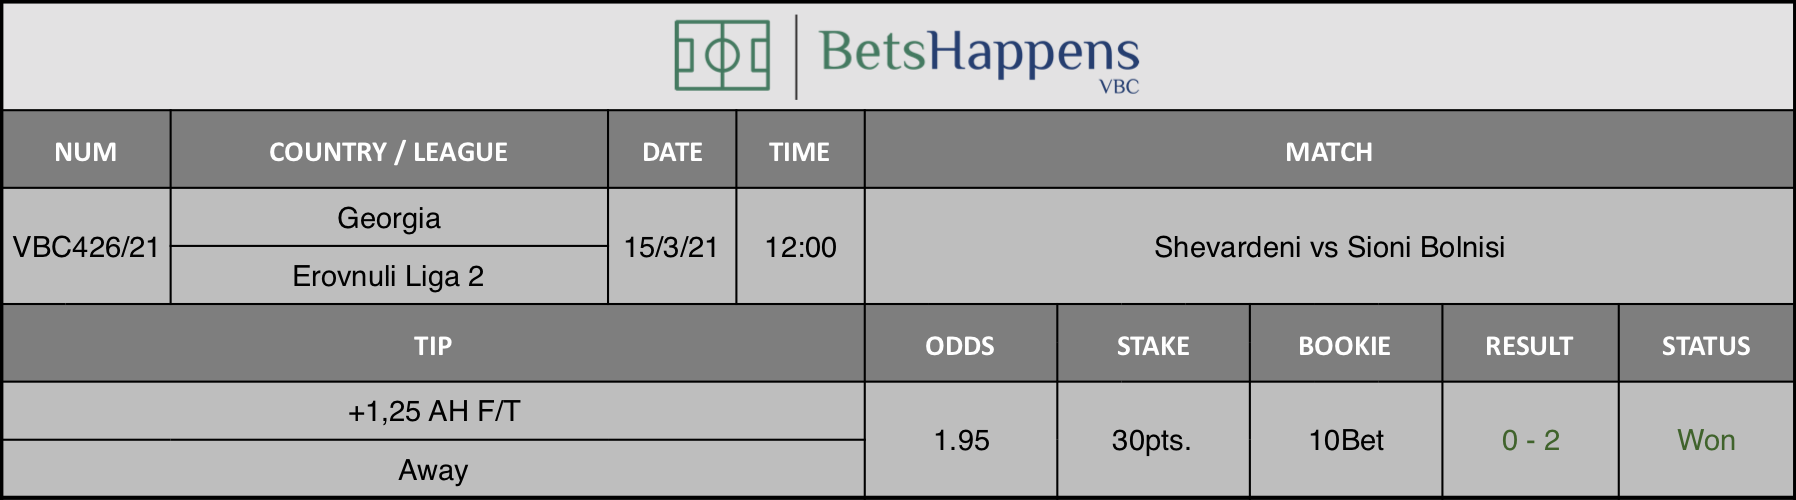 Results of our tip for the Shevardeni vs Sioni Bolnisi match where -0,25 AH F/T  Away is recommended.